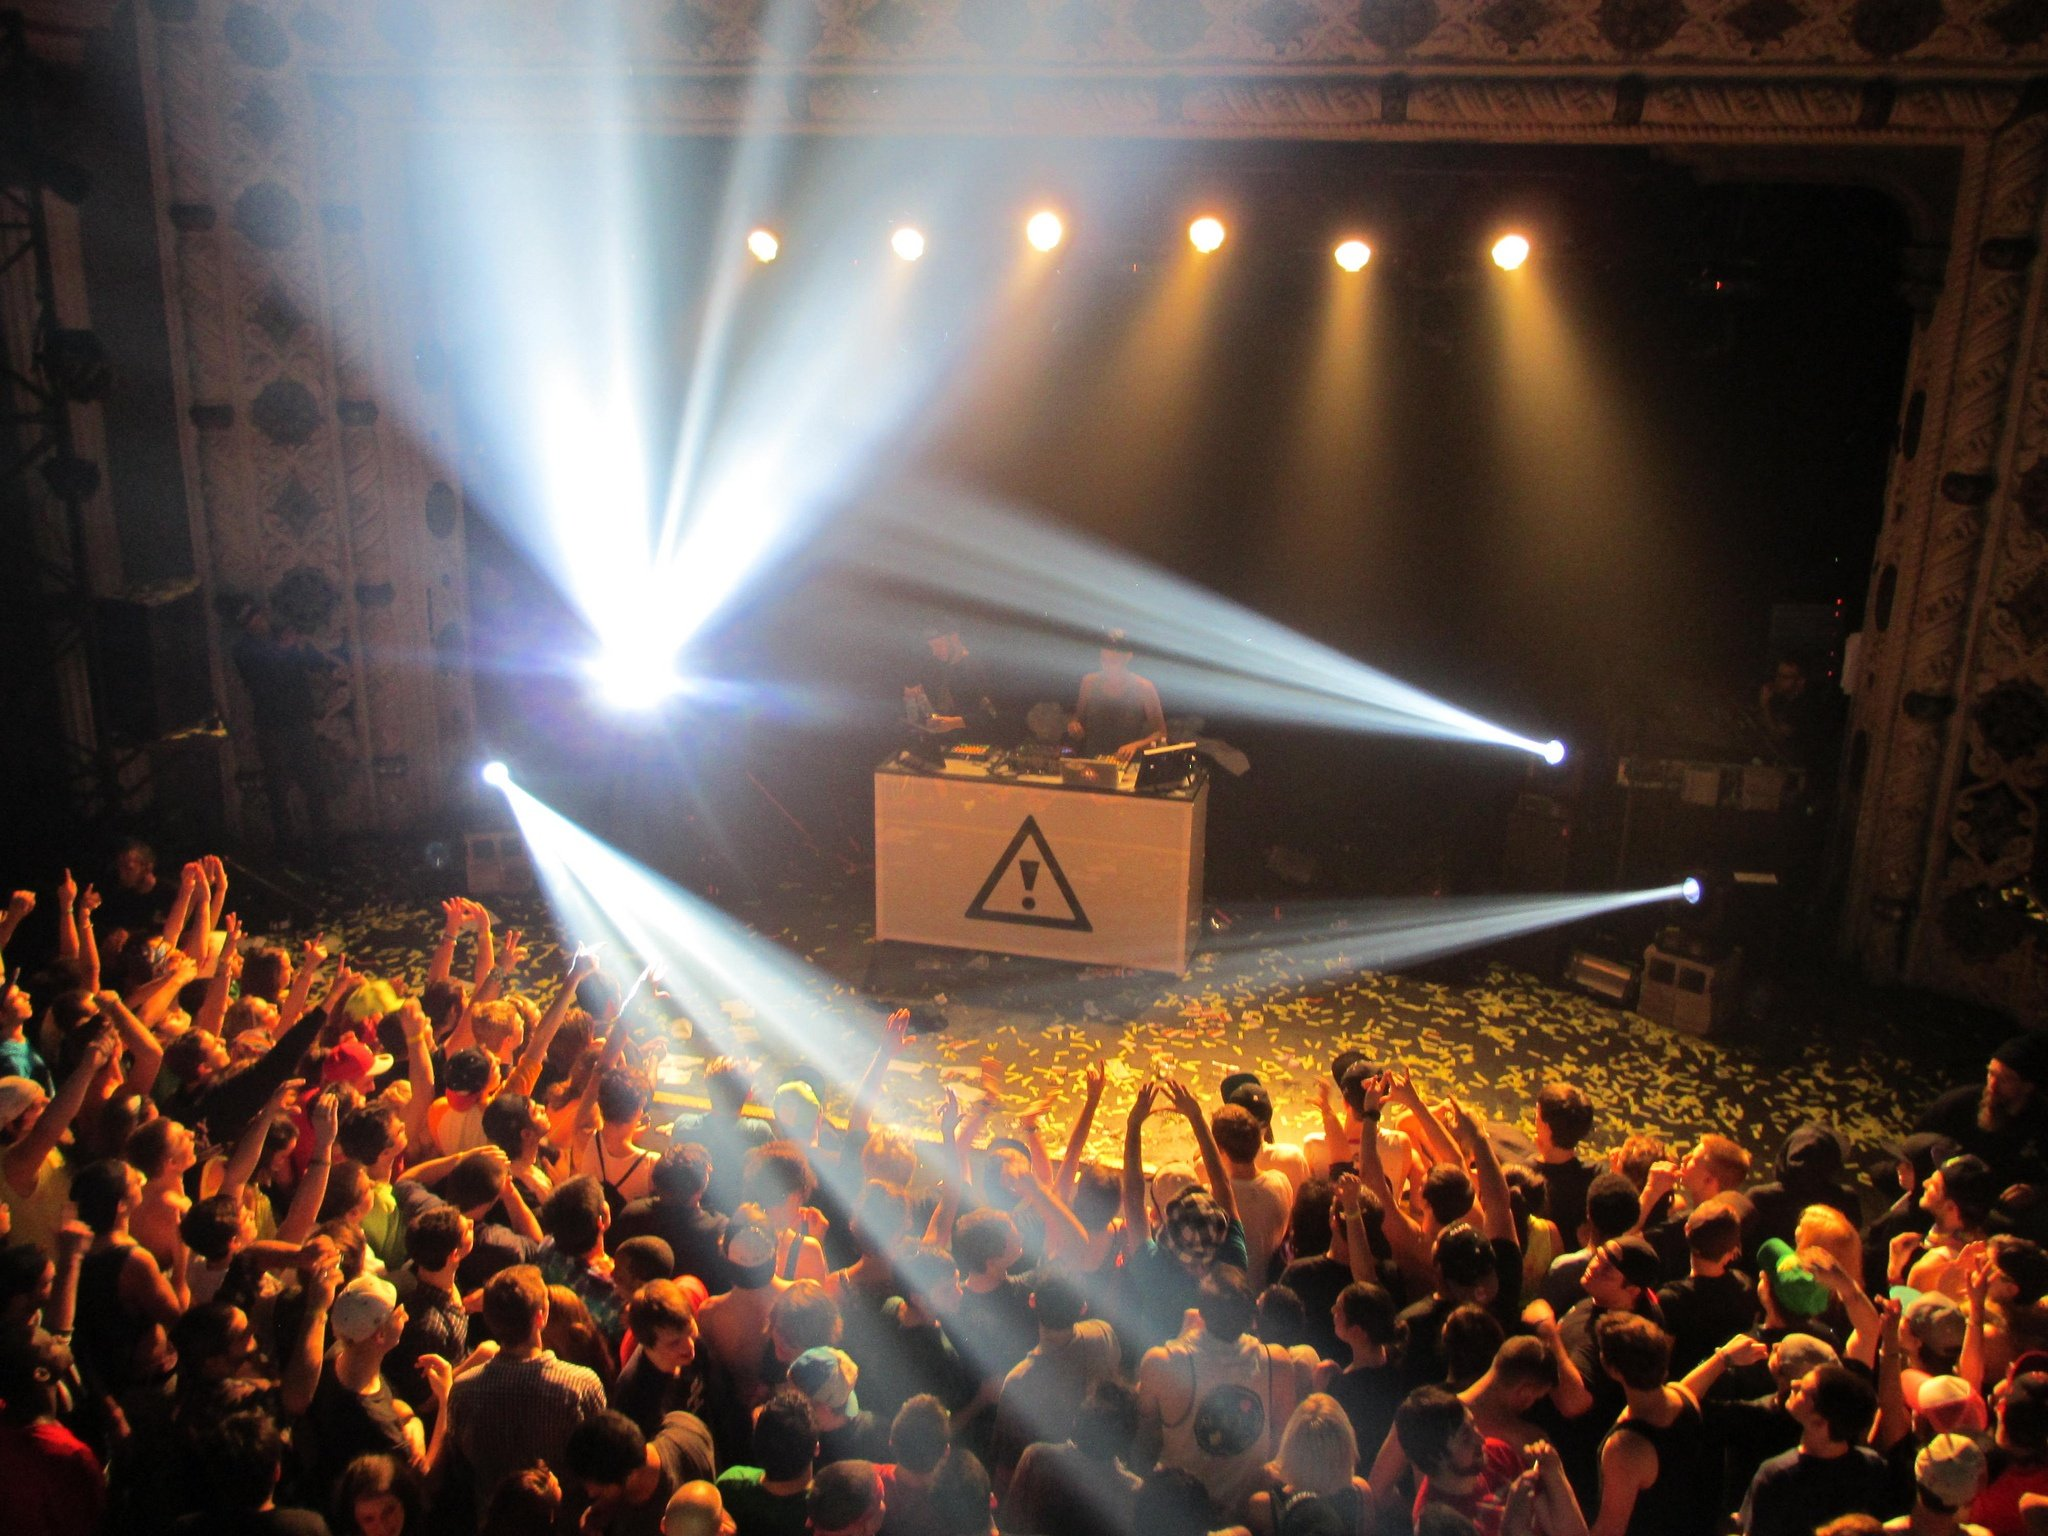 DJ_duo_Flosstradamus_plays_for_a_packed_crowd_at_the_Metro_in_hometown_Chicago.jpg